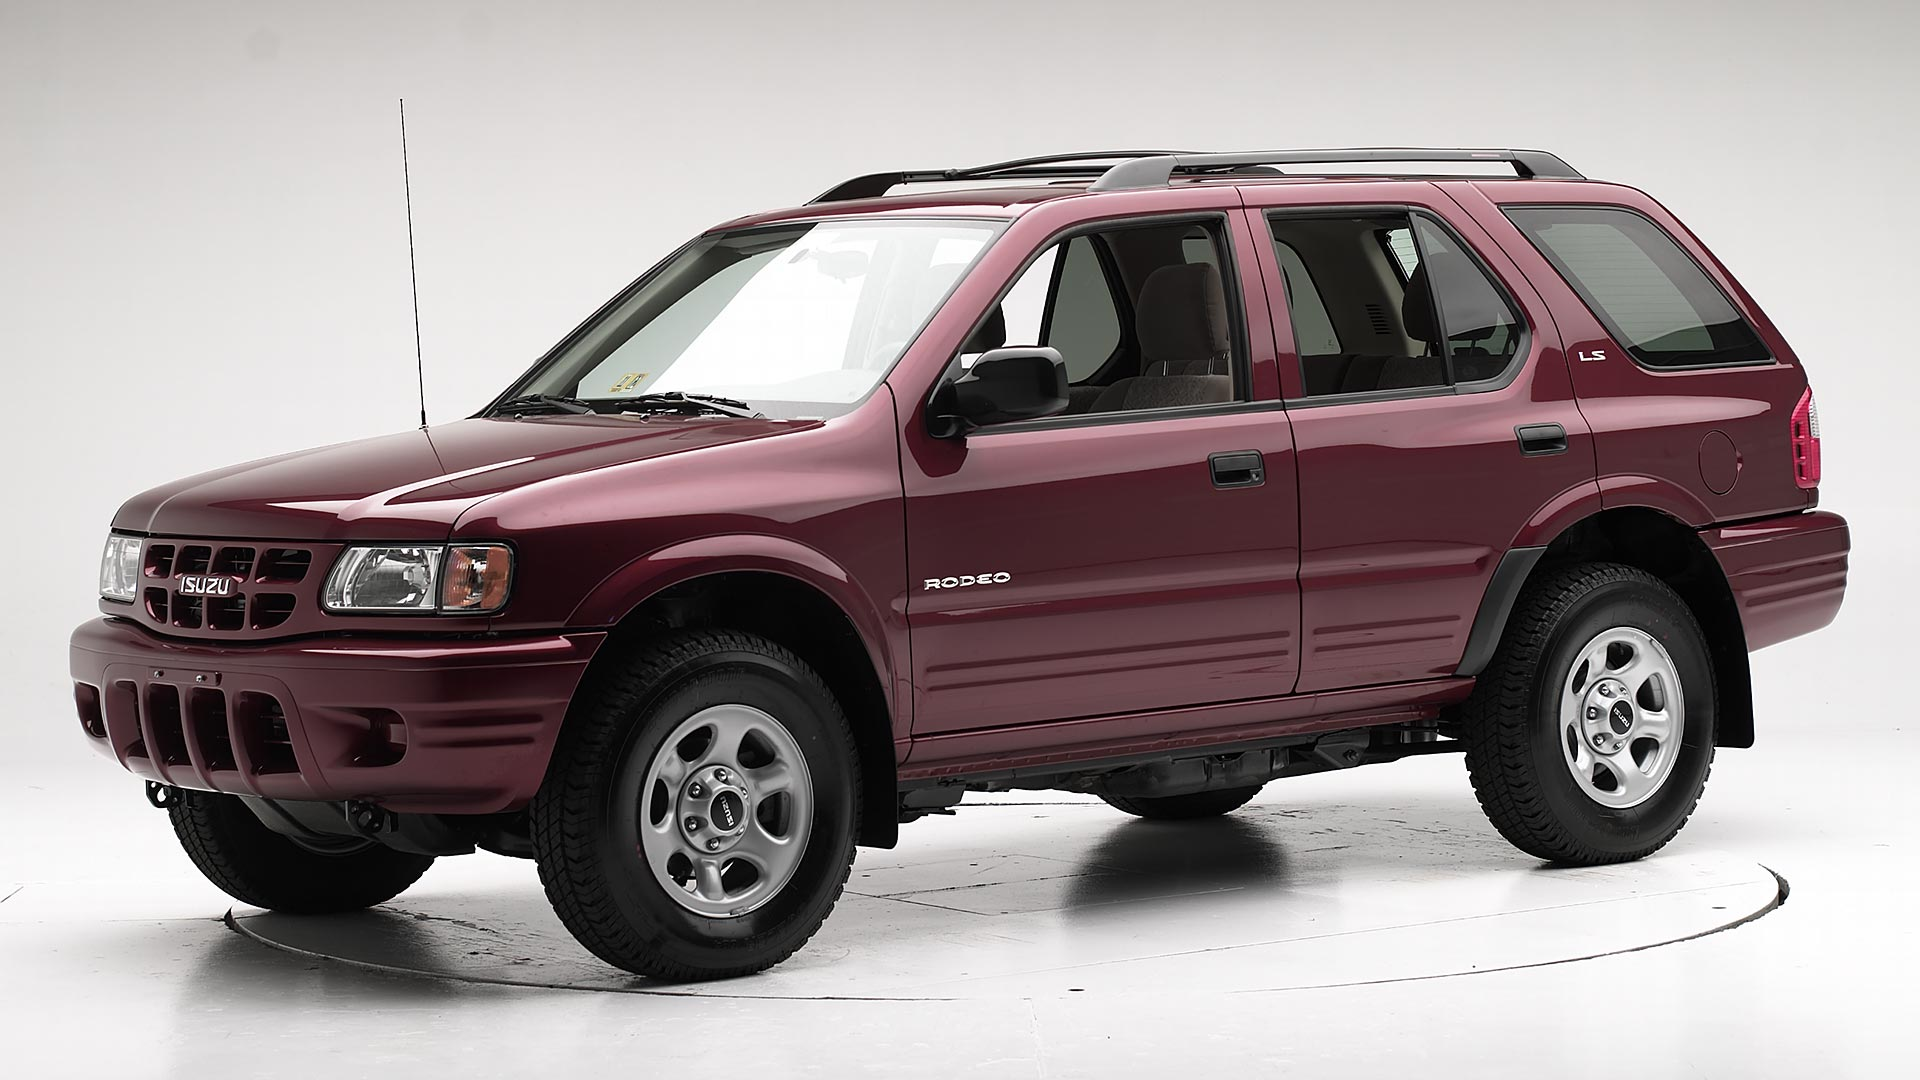 2002 Isuzu Rodeo 4-door SUV